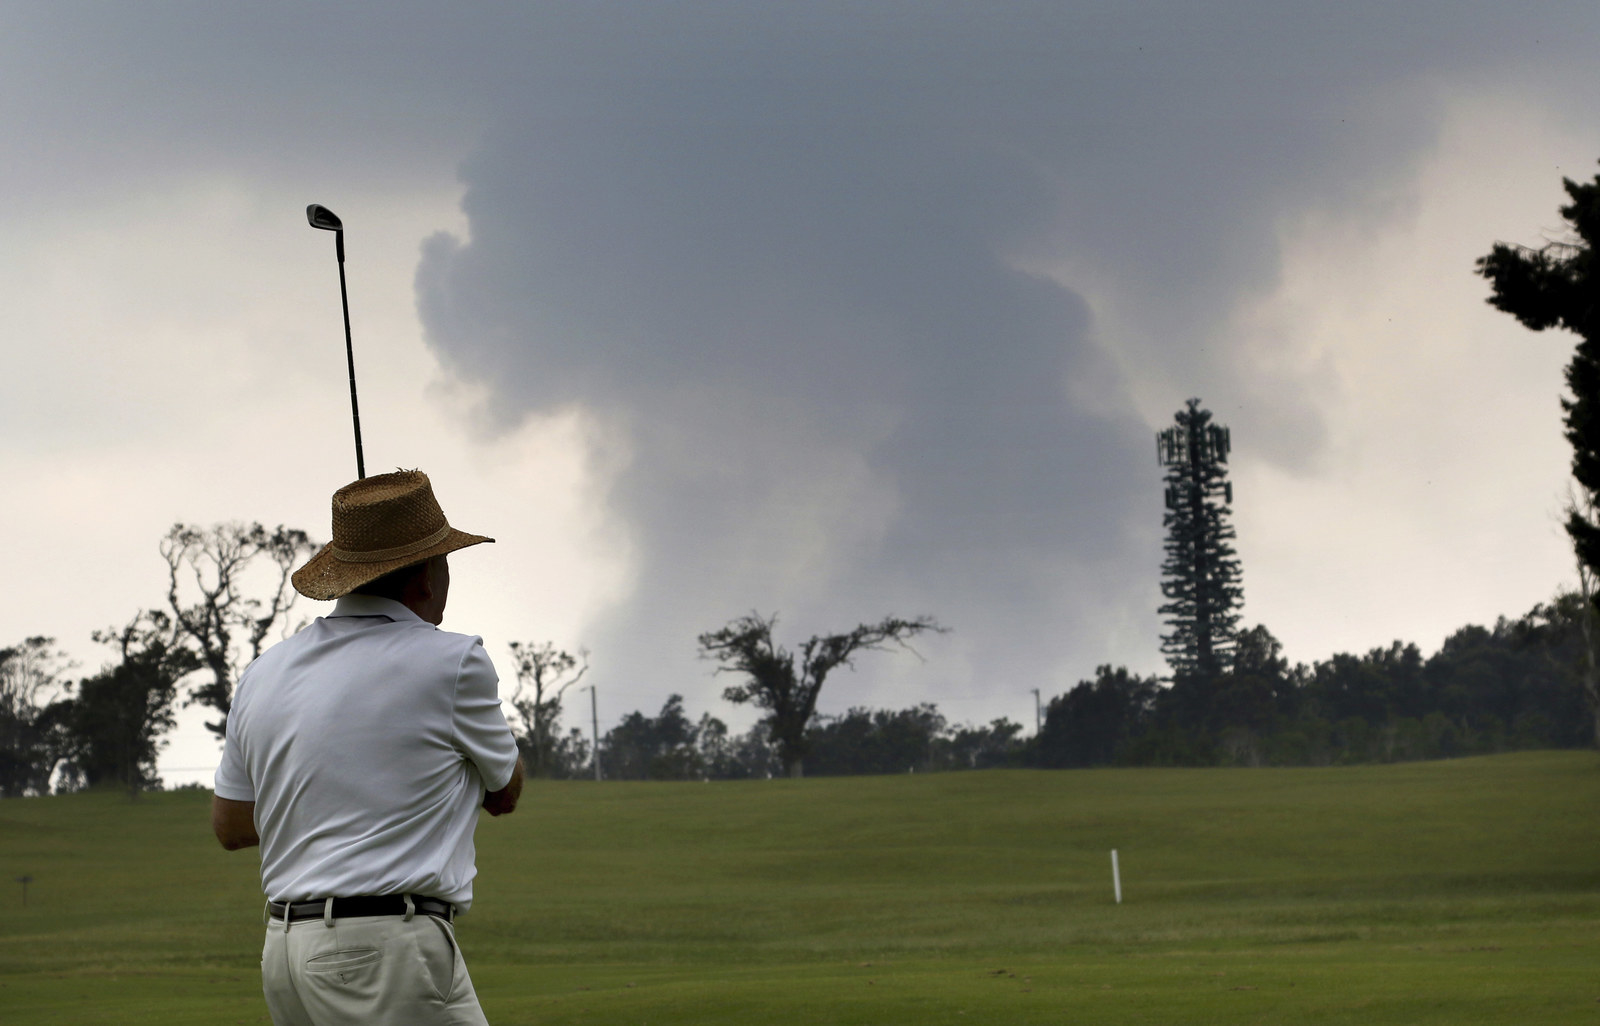 Ken McGilvray, of Keaau, Hawaii, golfs Wednesday.